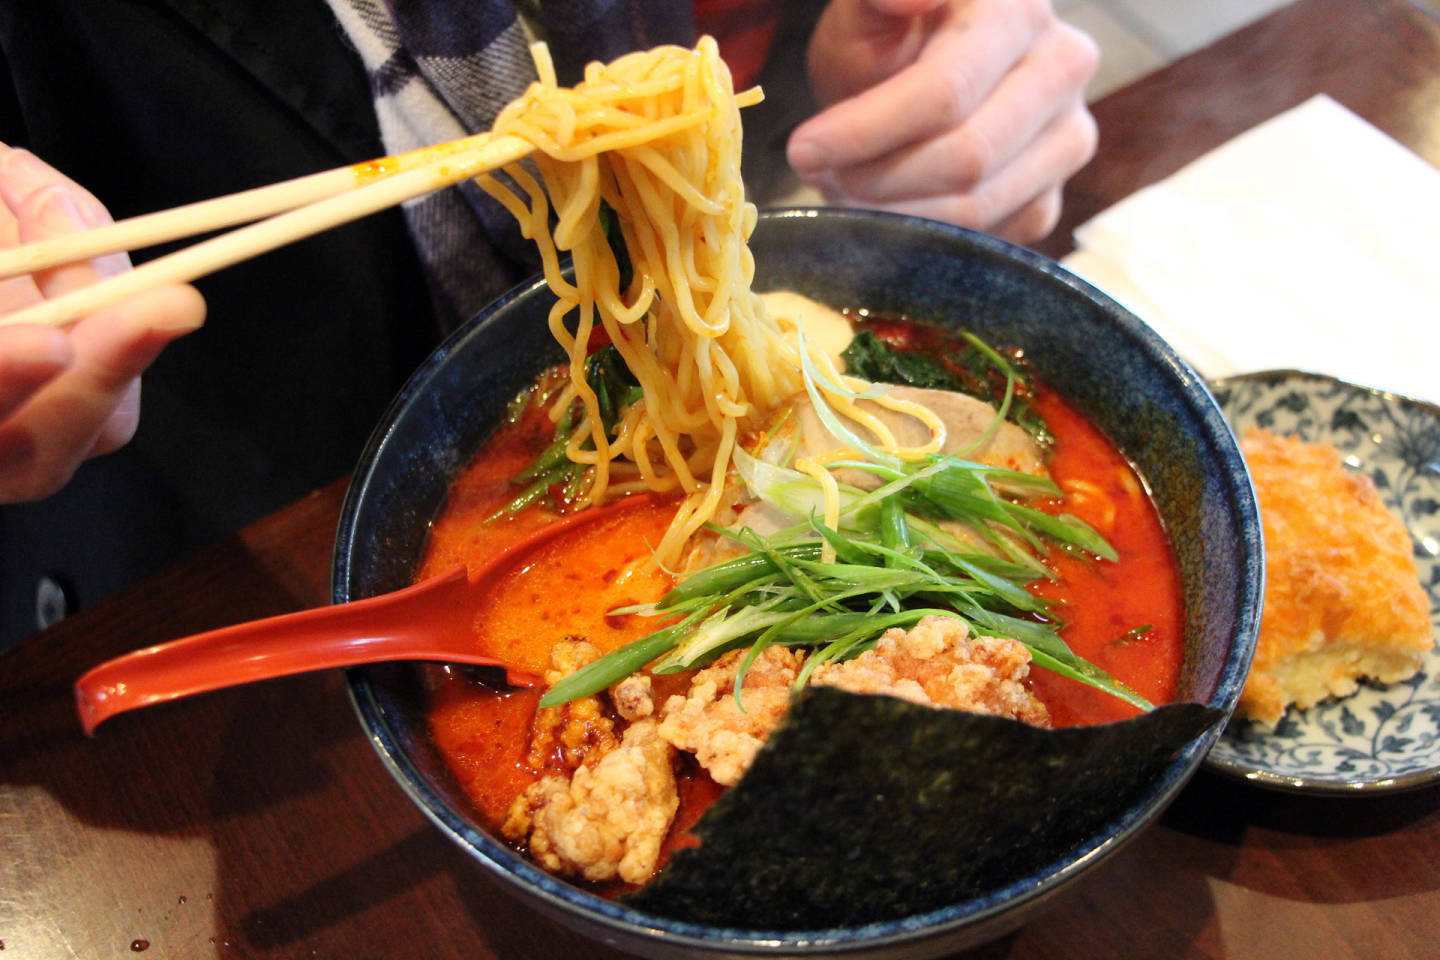 Sawaii Ramen's spicy mala. Wendy Goodfriend